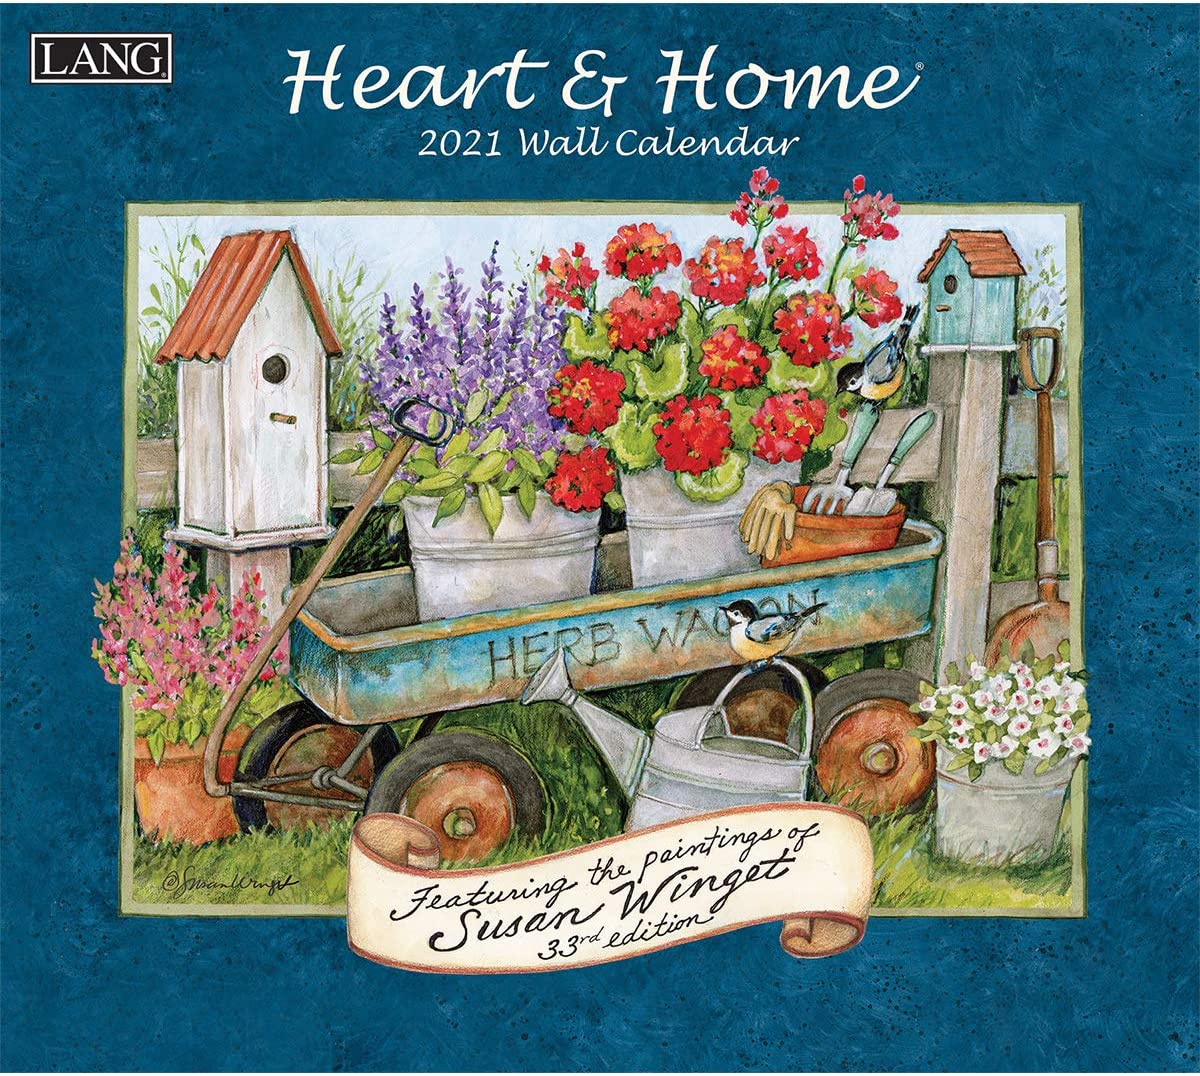 Amazon.: Lang Heart & Home 2021 Wall Calendar (21991001913